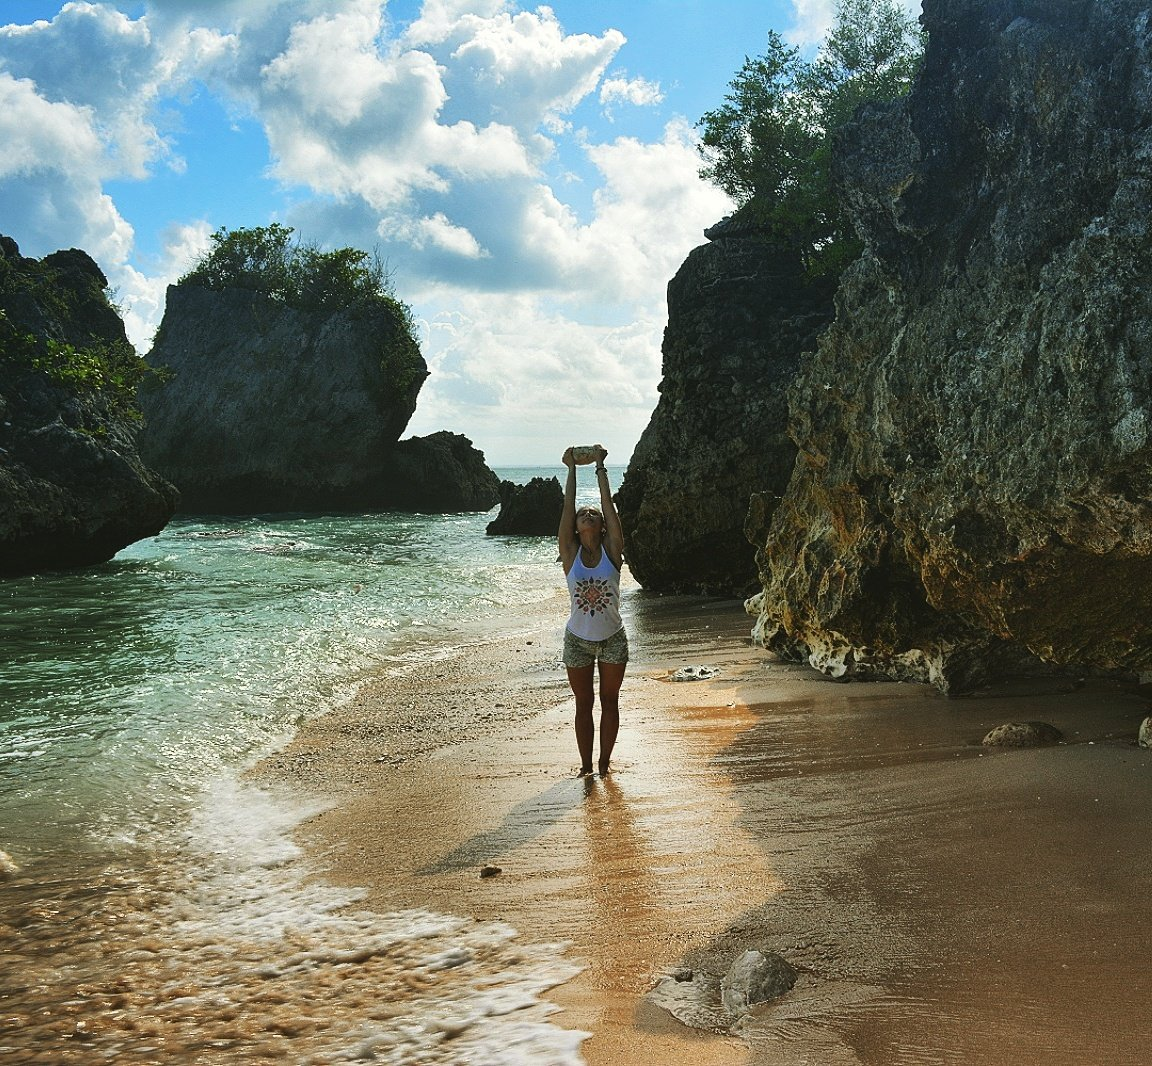 Want to #travel to #Bali but don&#39;t know how to afford it? Read my blog for tips on how to Bali on a budget!    http:// wp.me/p8cQ8I-sD  &nbsp;  <br>http://pic.twitter.com/kKX5Z4Iuzi